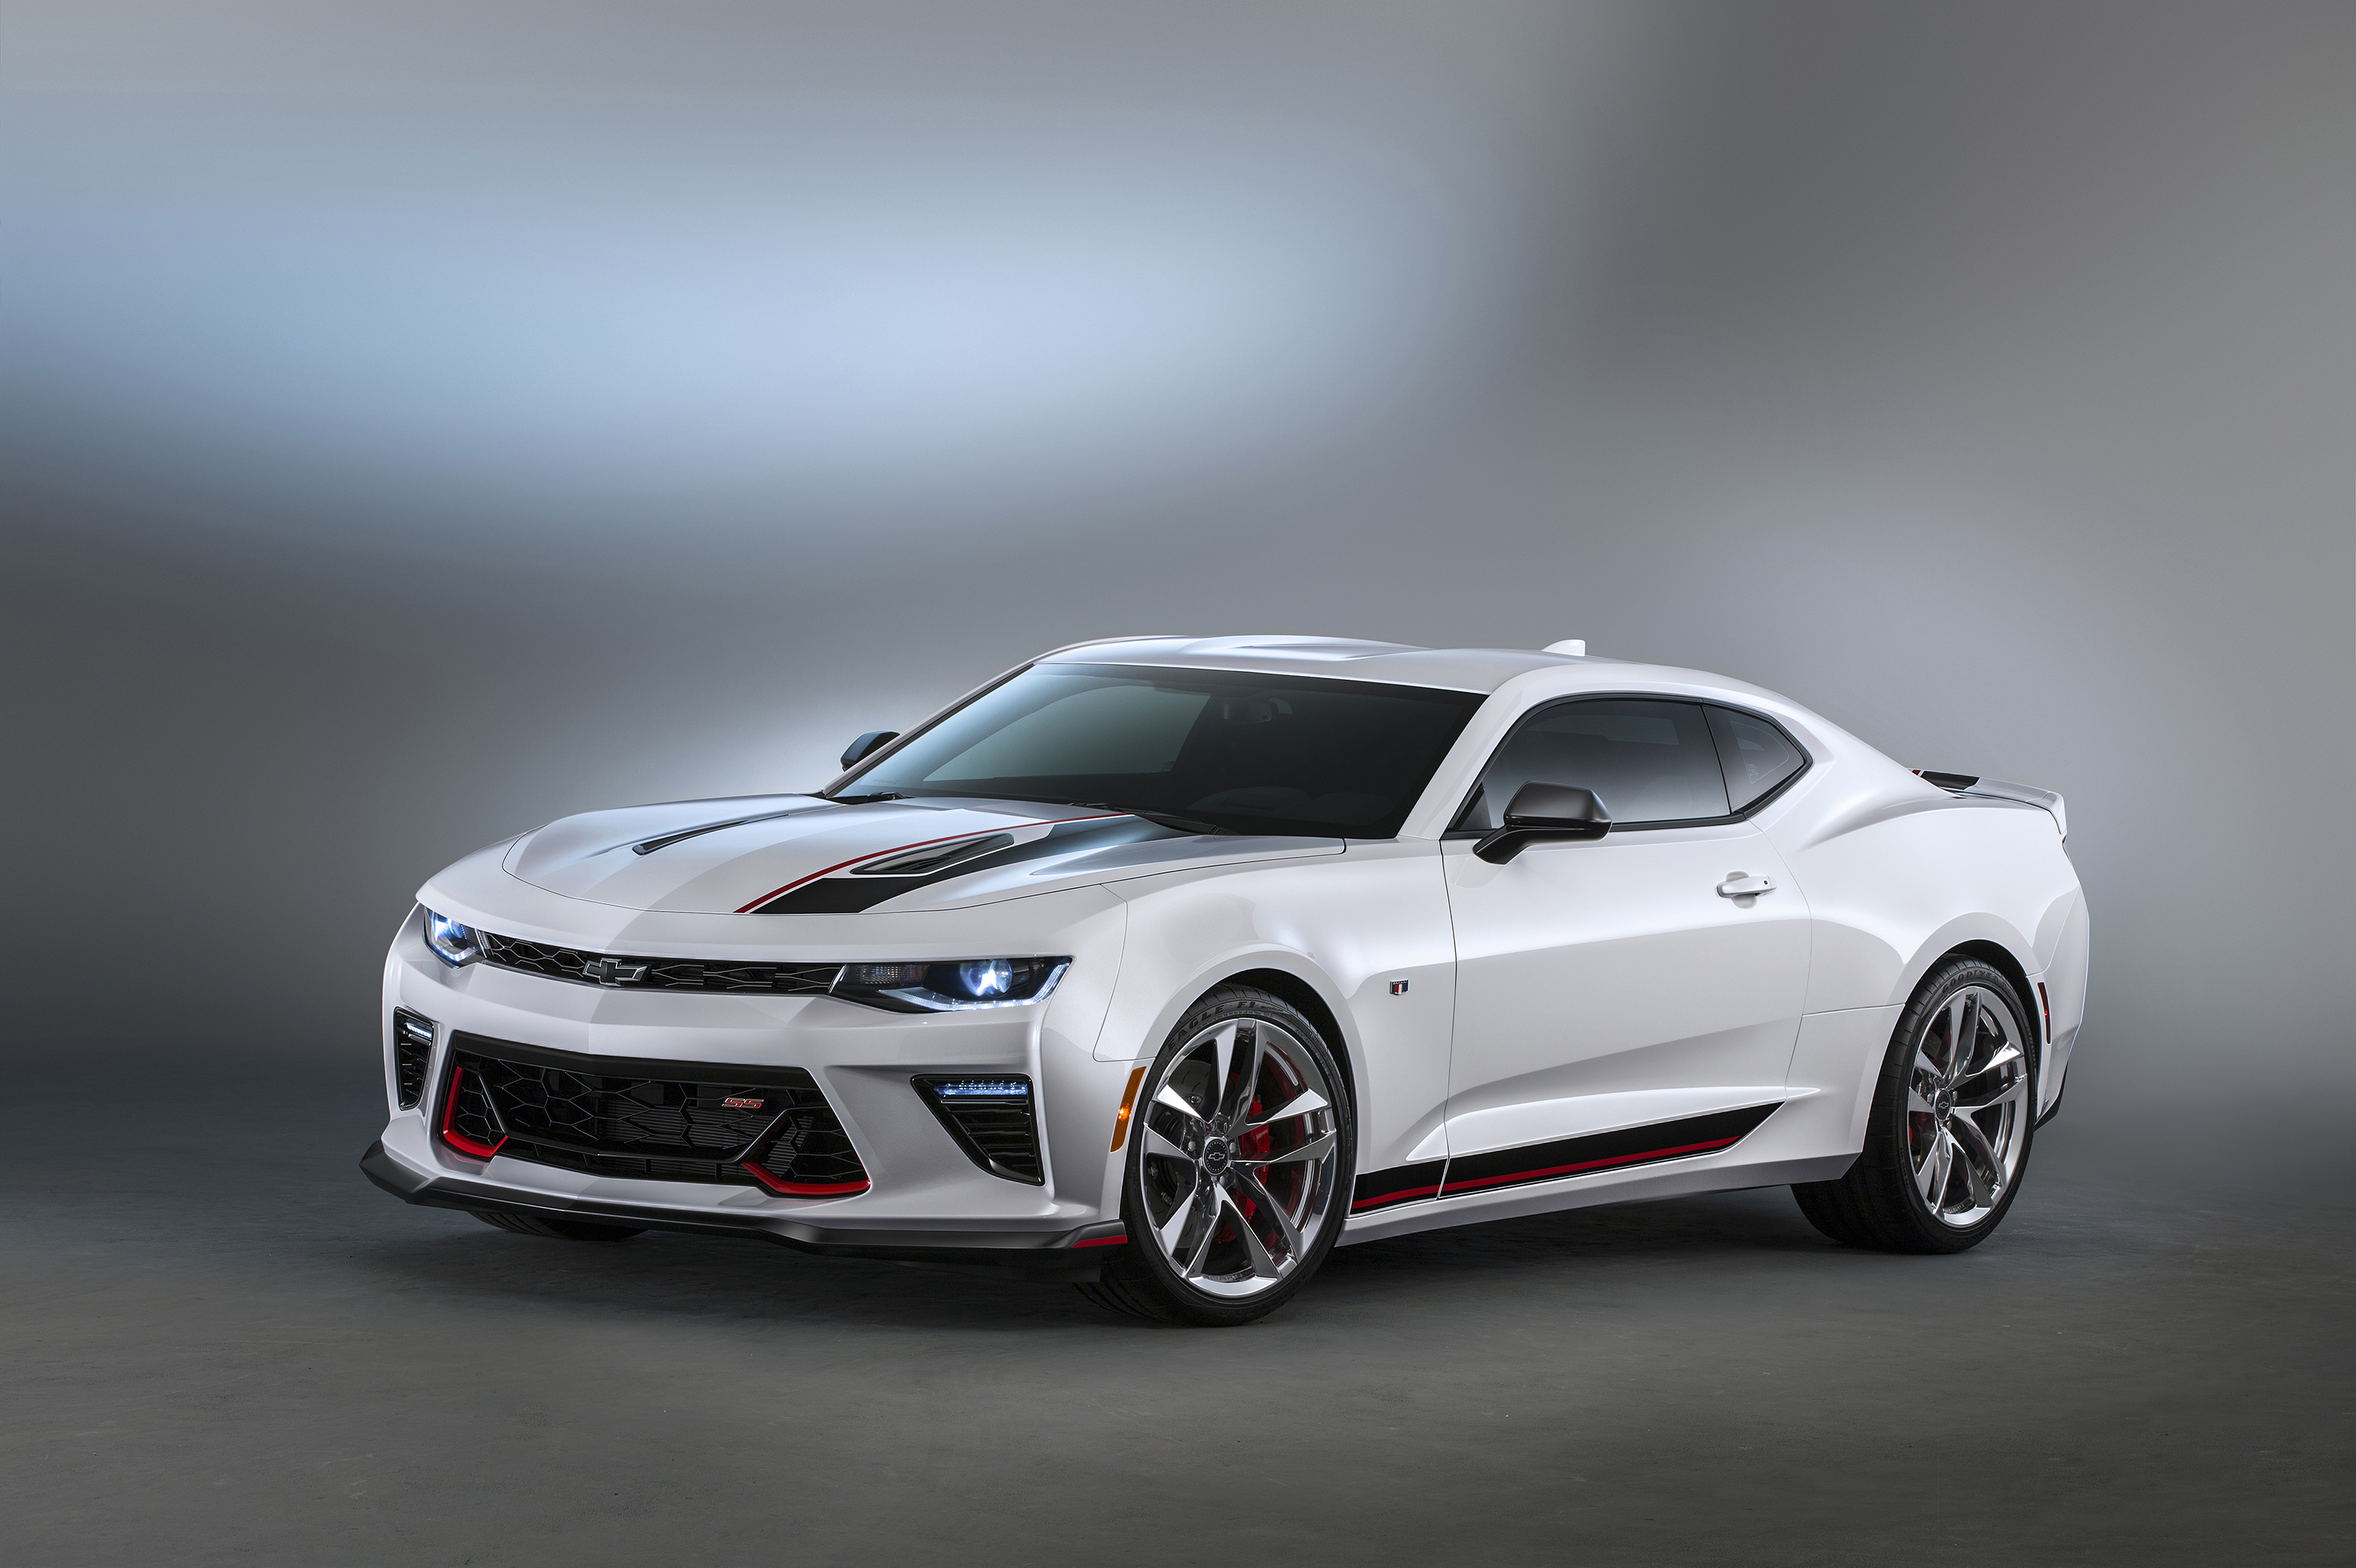 Gen six camaro concepts shine at sema show - Camaro ss ...